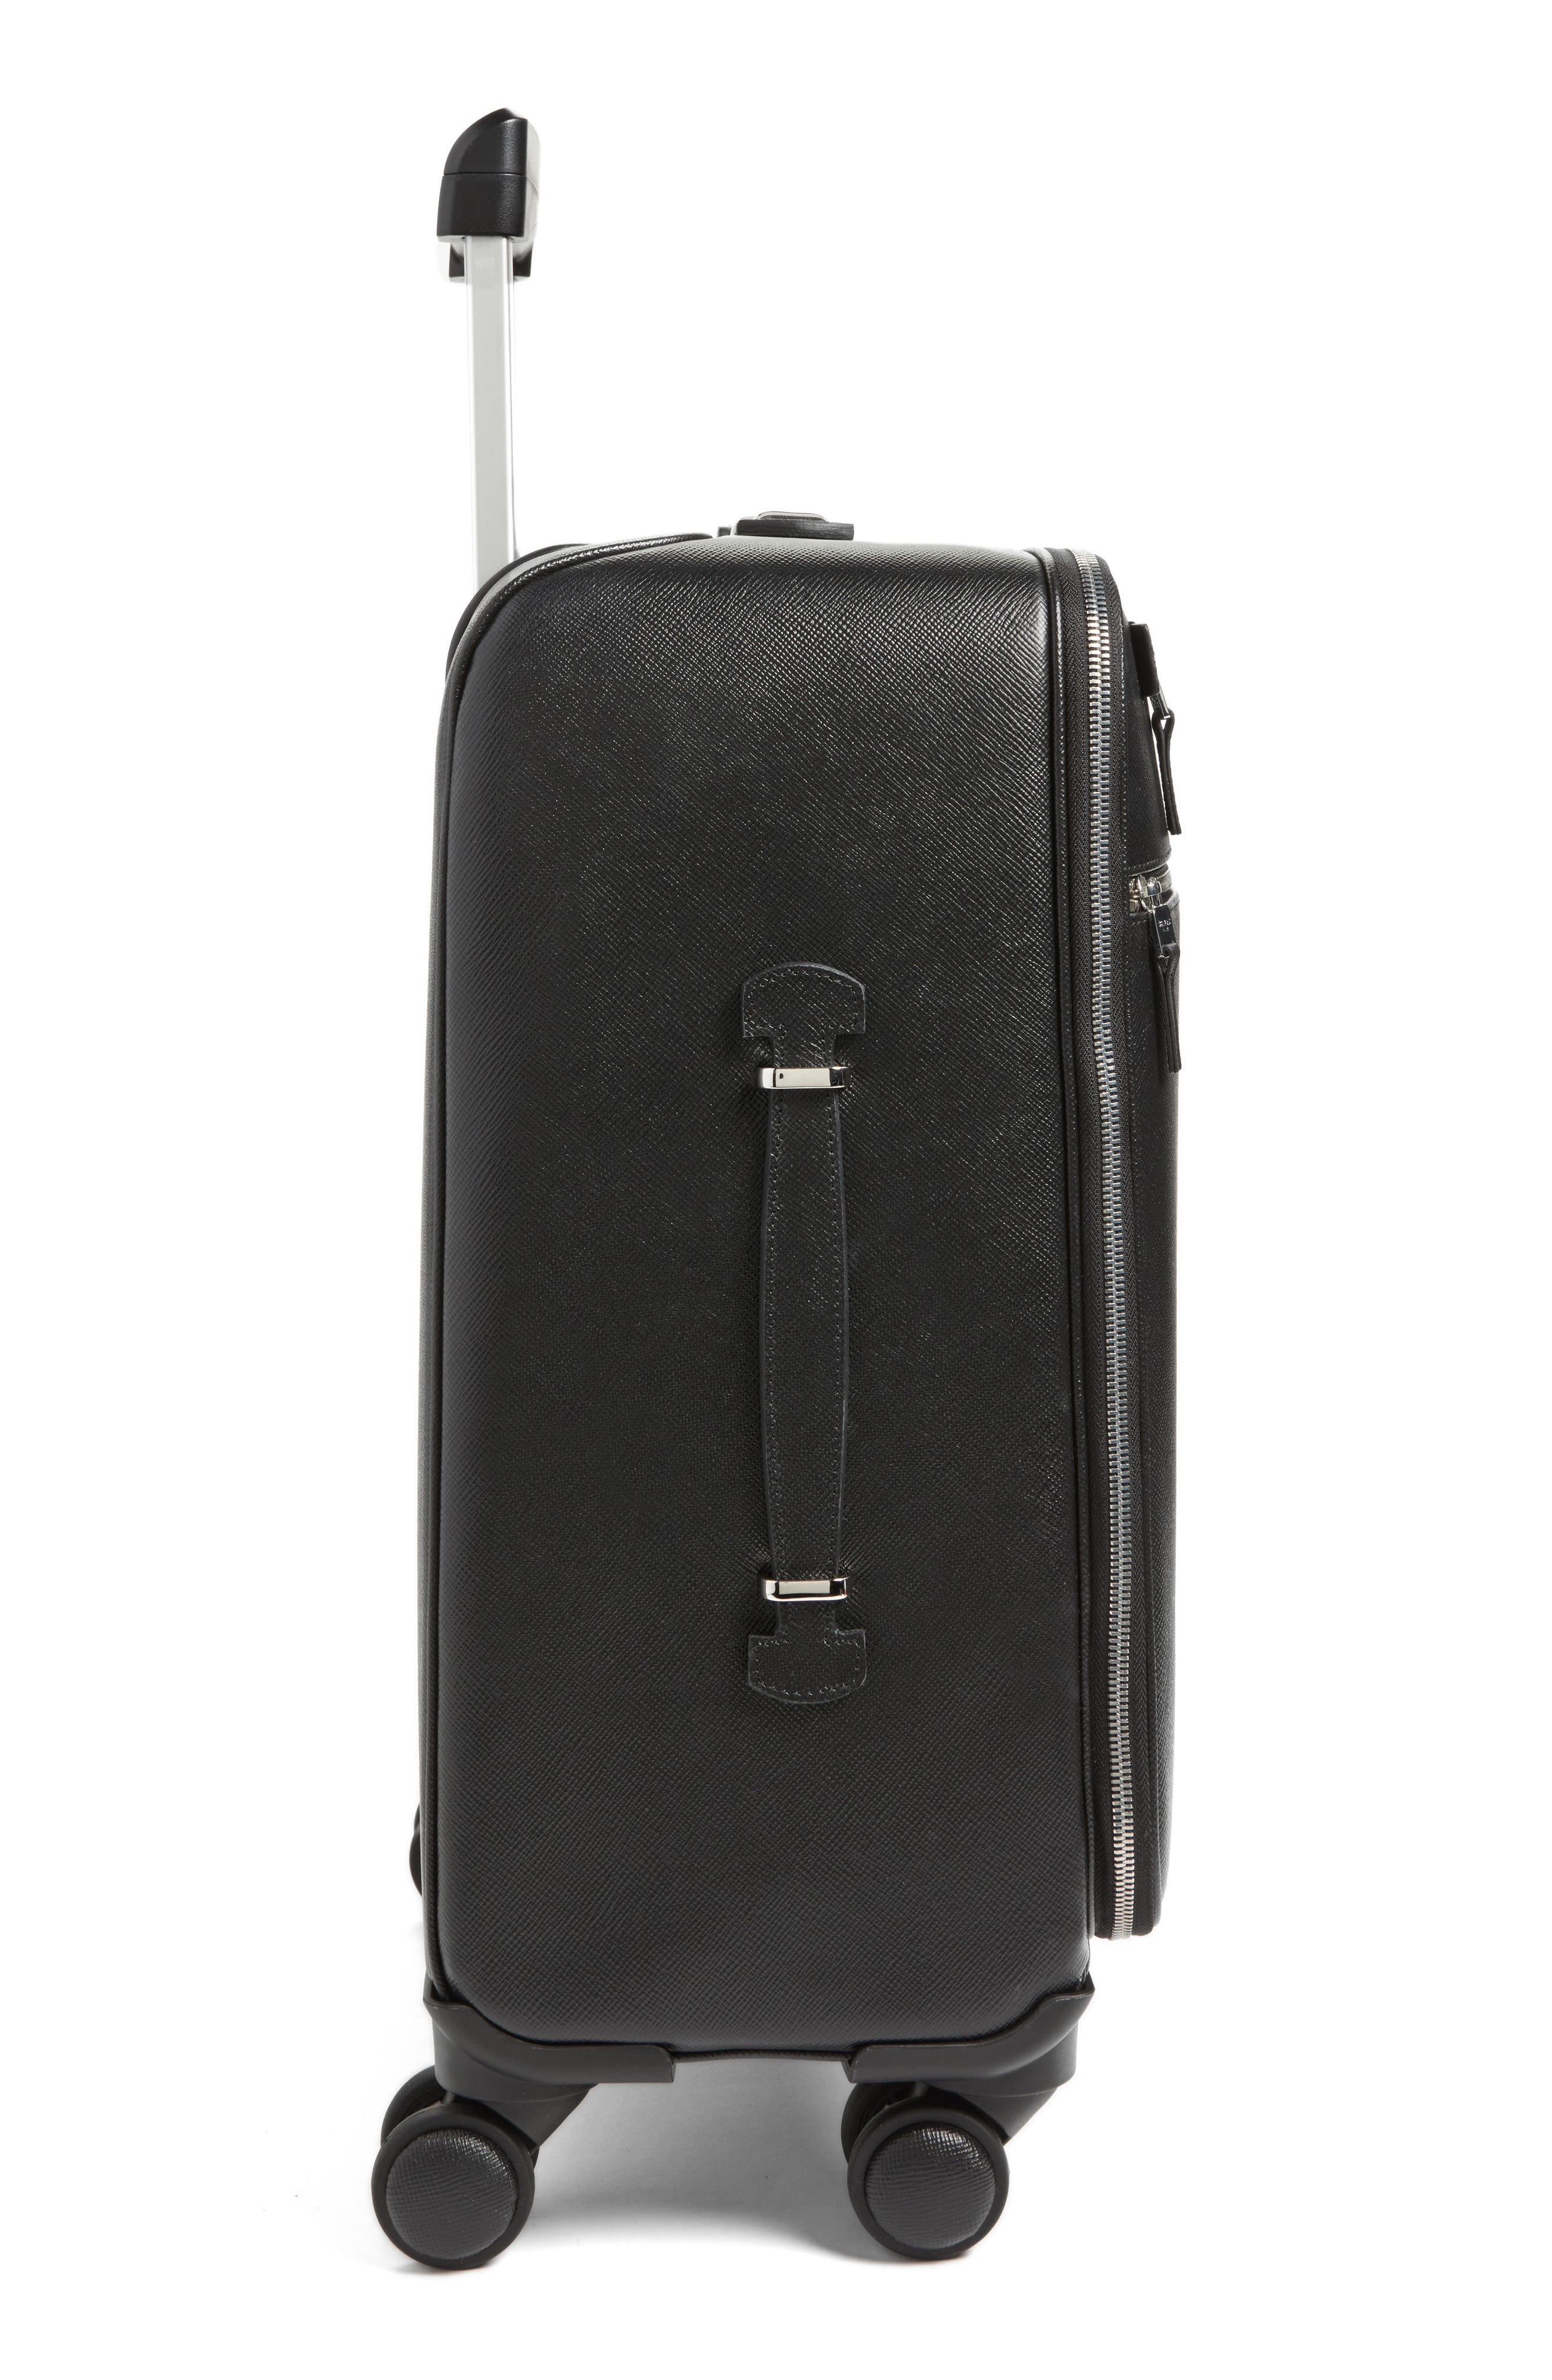 Trolley Spinner Wheeled Carry-On Suitcase,                             Alternate thumbnail 4, color,                             Black